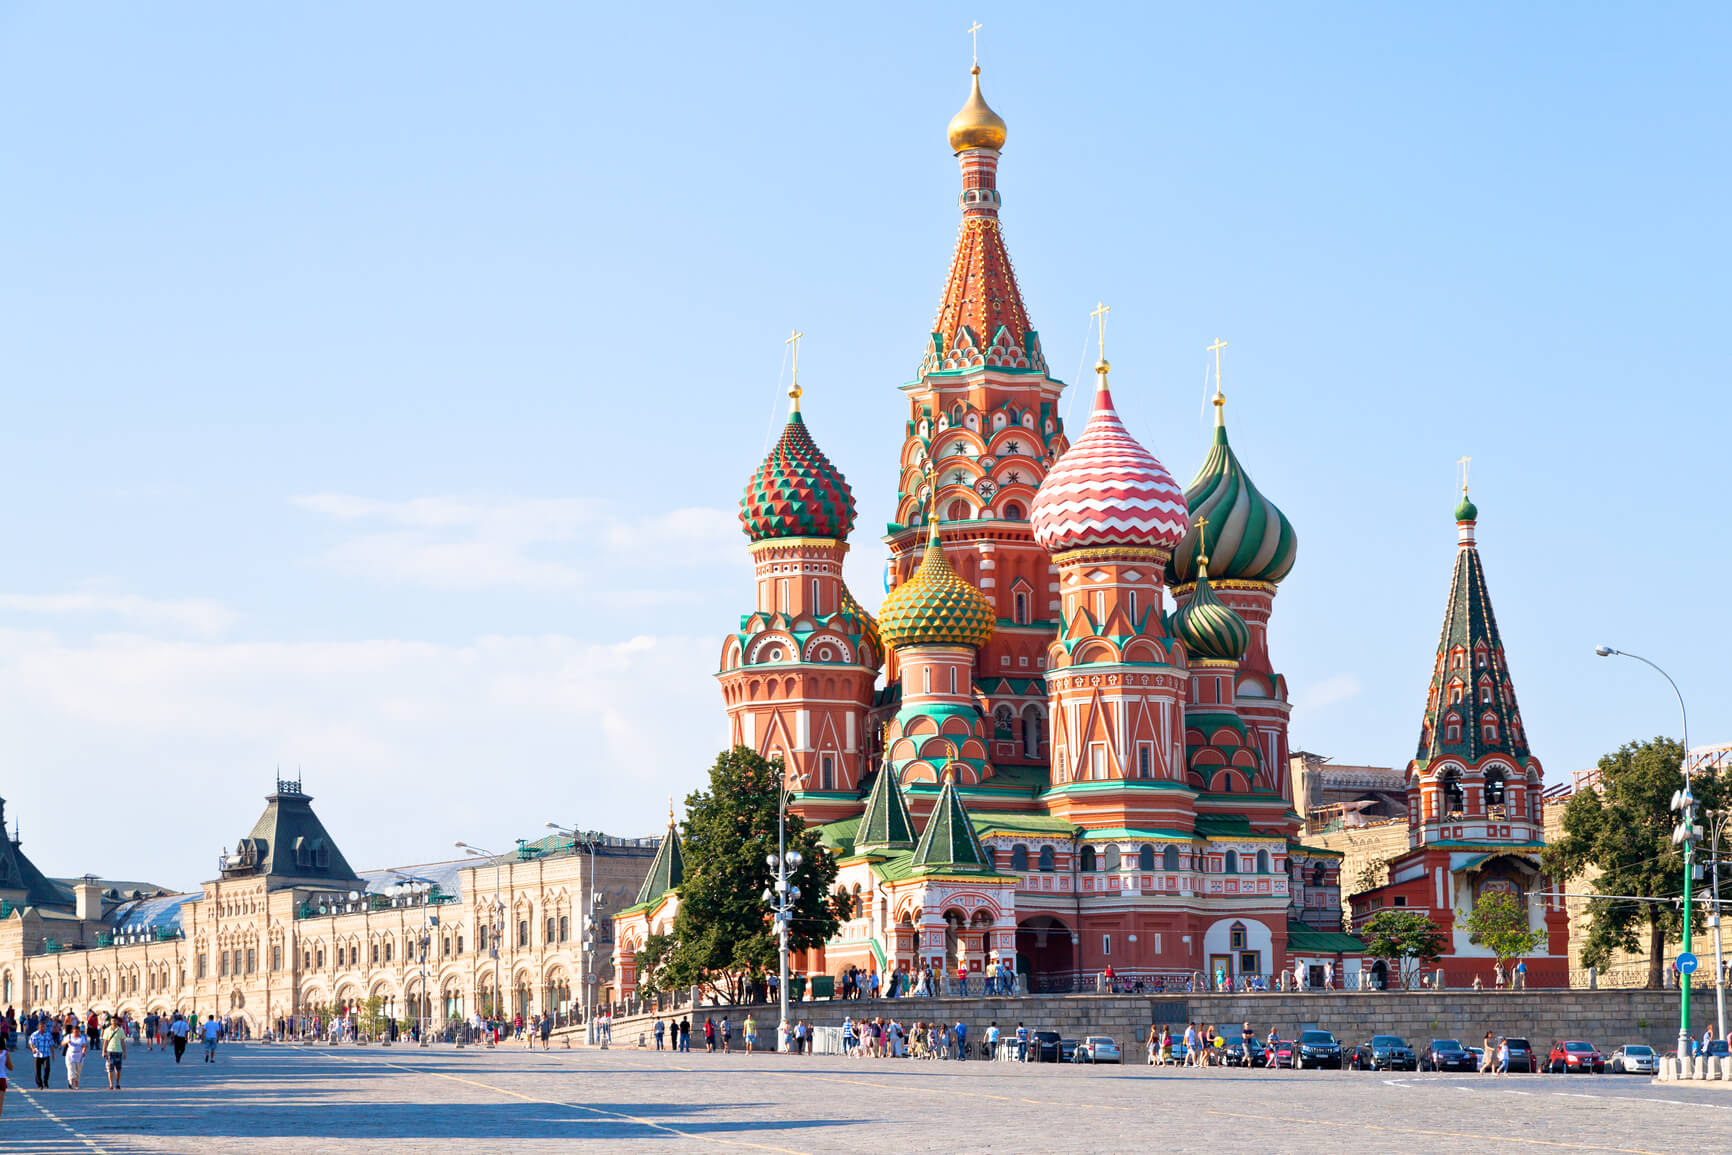 Non-stop from Samarkand, Uzbekistan to Moscow, Russia for only $270 roundtrip